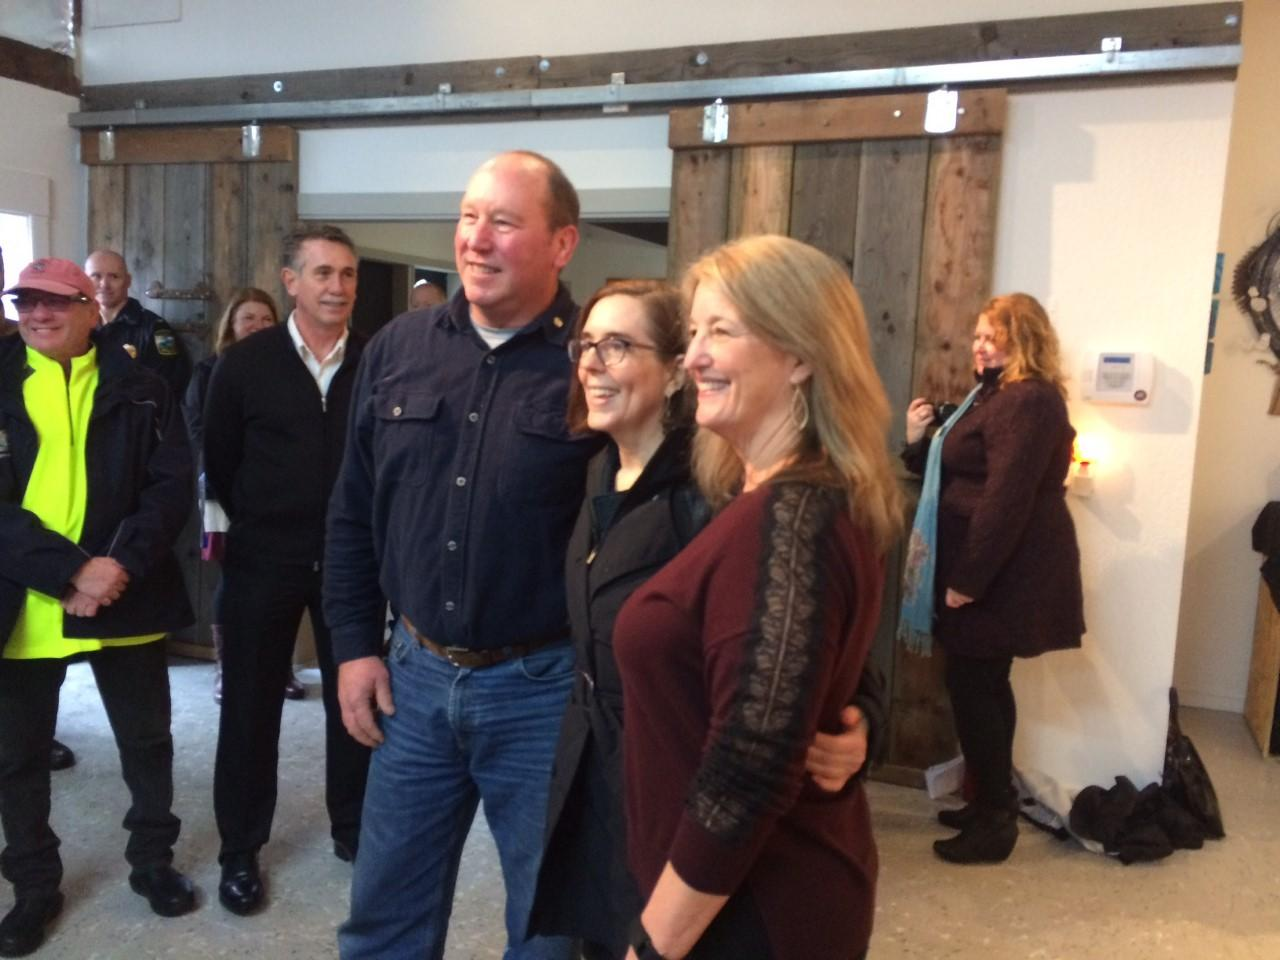 Gov. Kate Brown visited Florence Tuesday to discuss the city's recovering economy and how entrepreneurs are contributing to business development. (SBG photo)